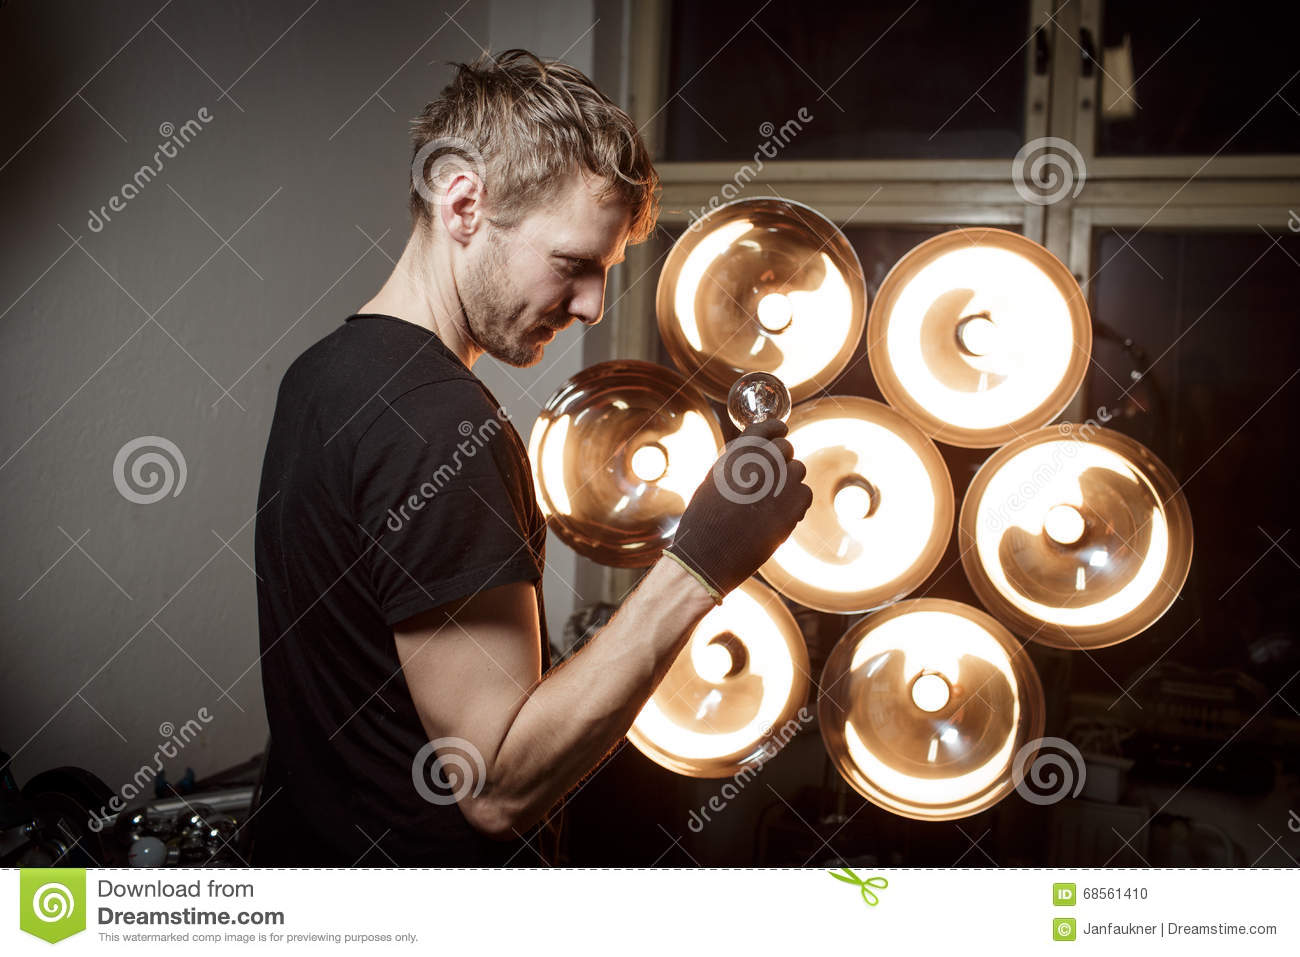 Young light designer looking at old electric bulb